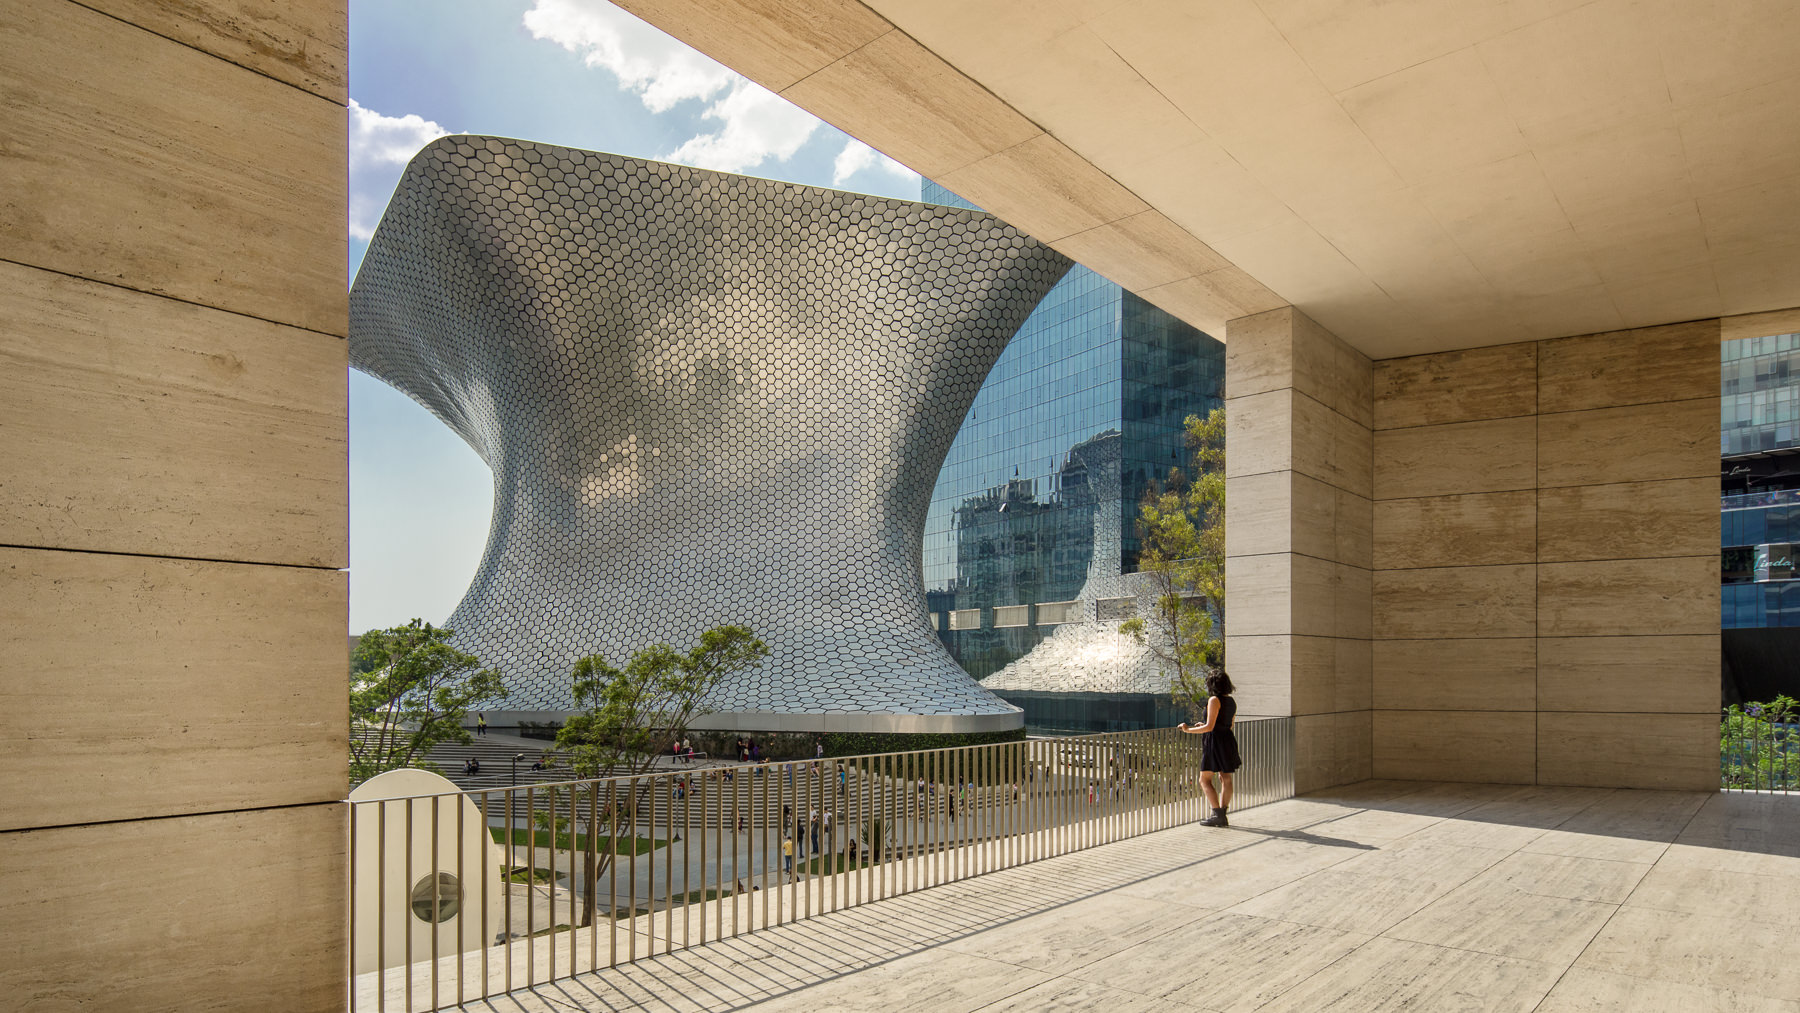 David Chipperfield Architects – Museo Jumex